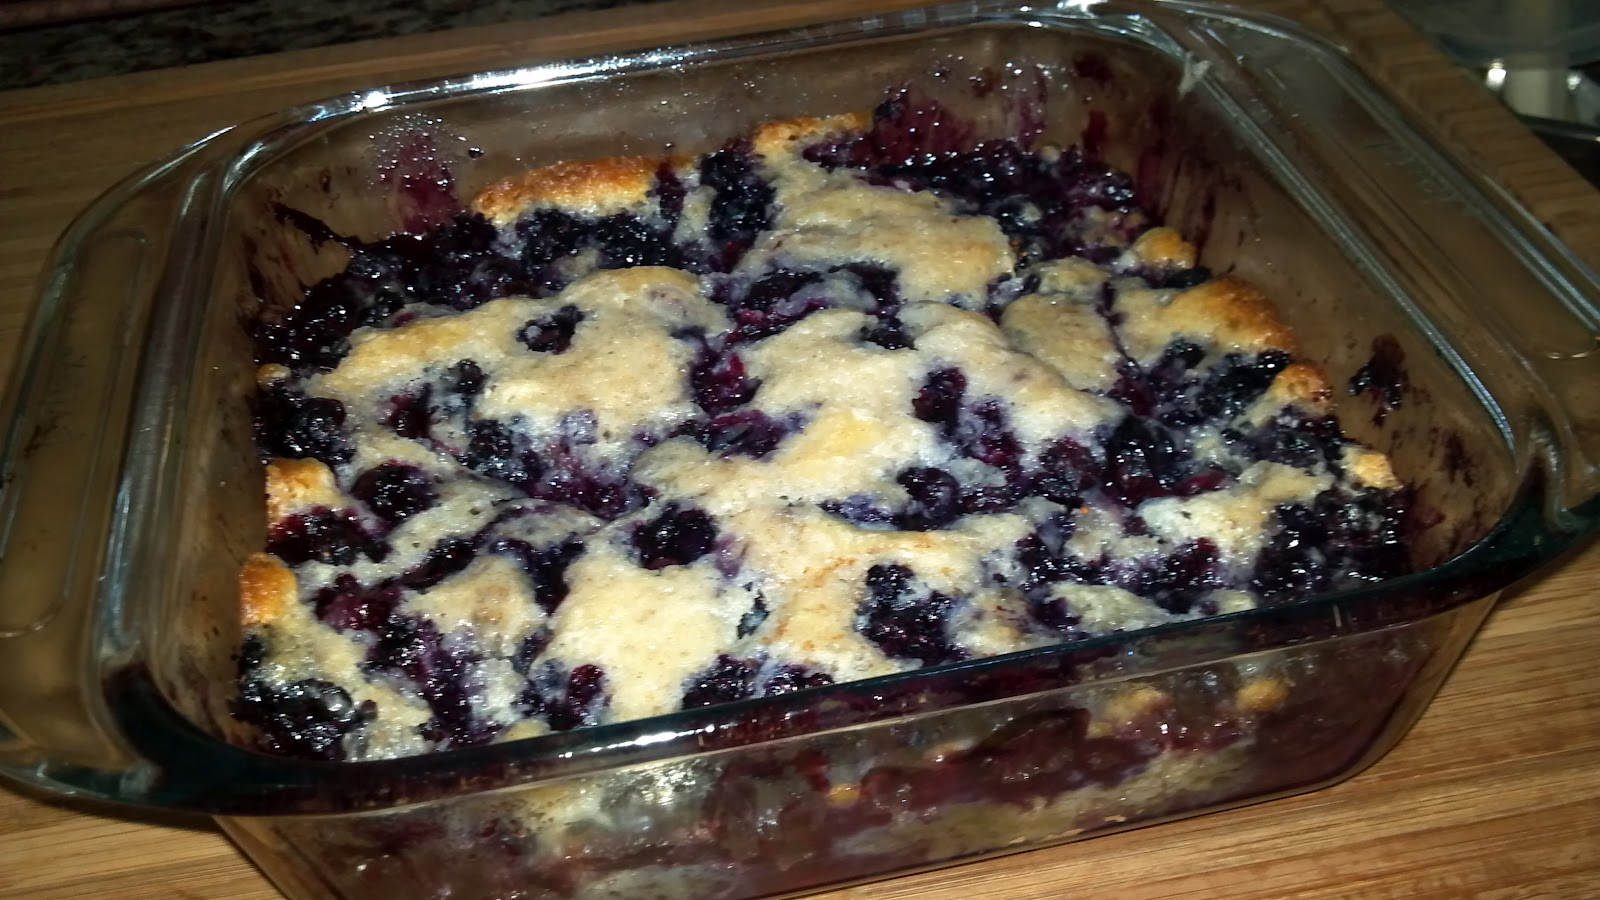 Sunday Supper, Grits, and Champagne: Quick Peach or Blueberry Cobbler